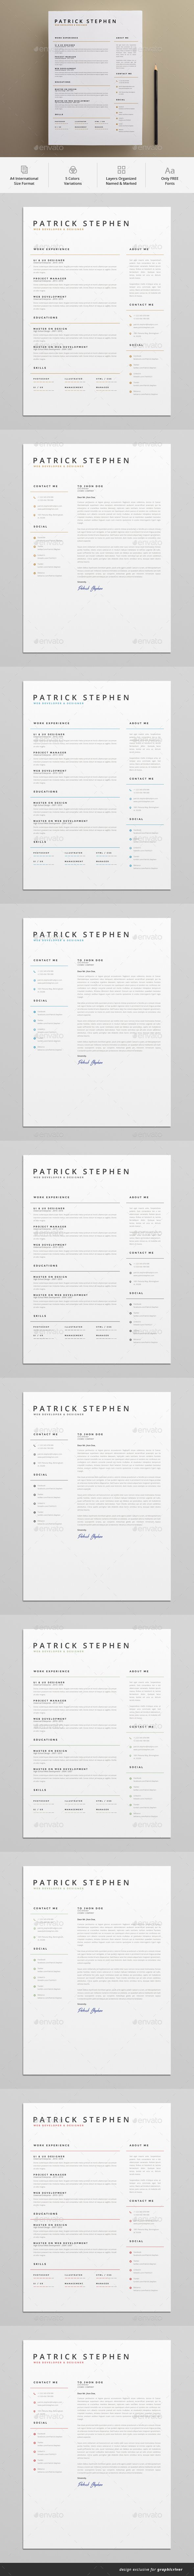 #Resume - Resumes #Stationery Download here: https://graphicriver.net/item/resume/19224274?ref=alena994